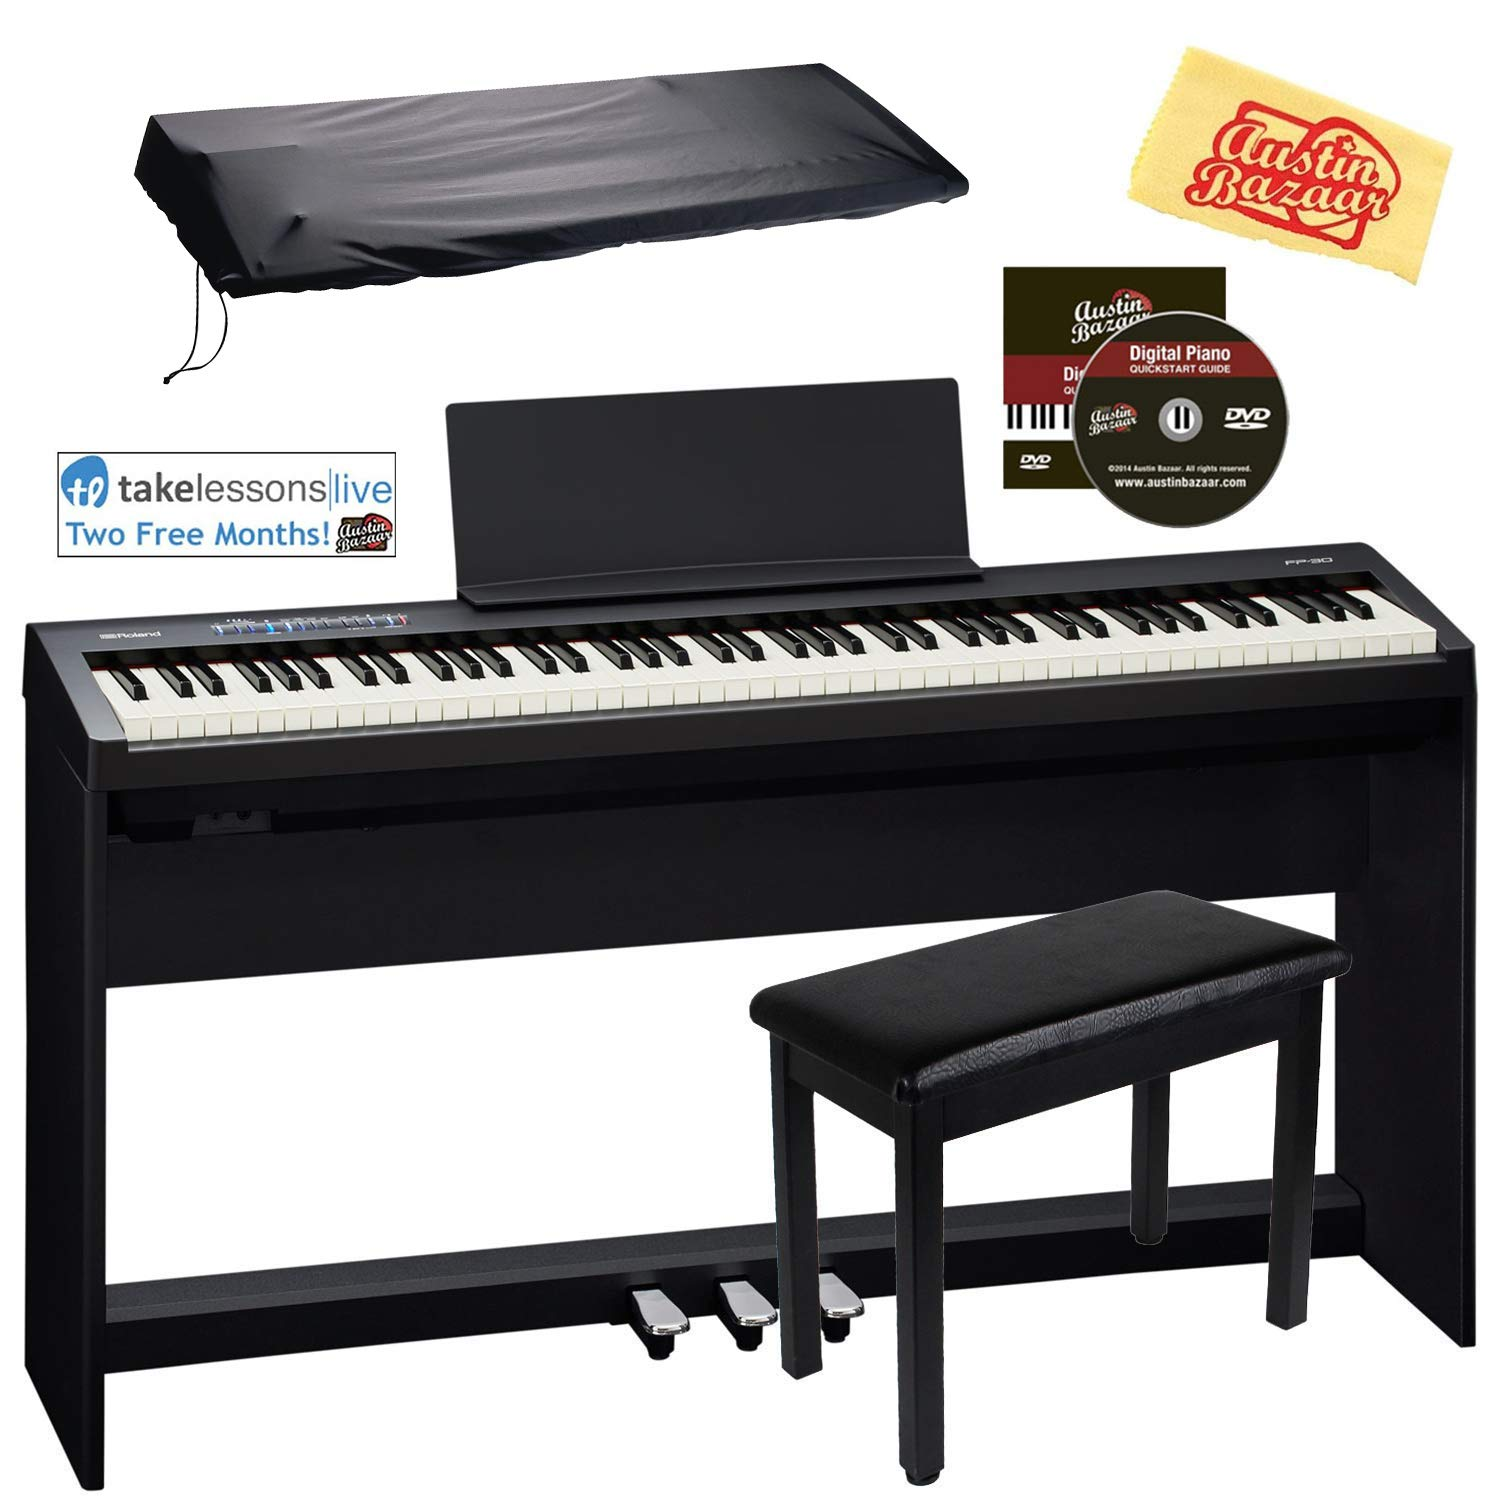 Top 10 Best Digital Piano with Weighted Keys (2020 Updated) 4